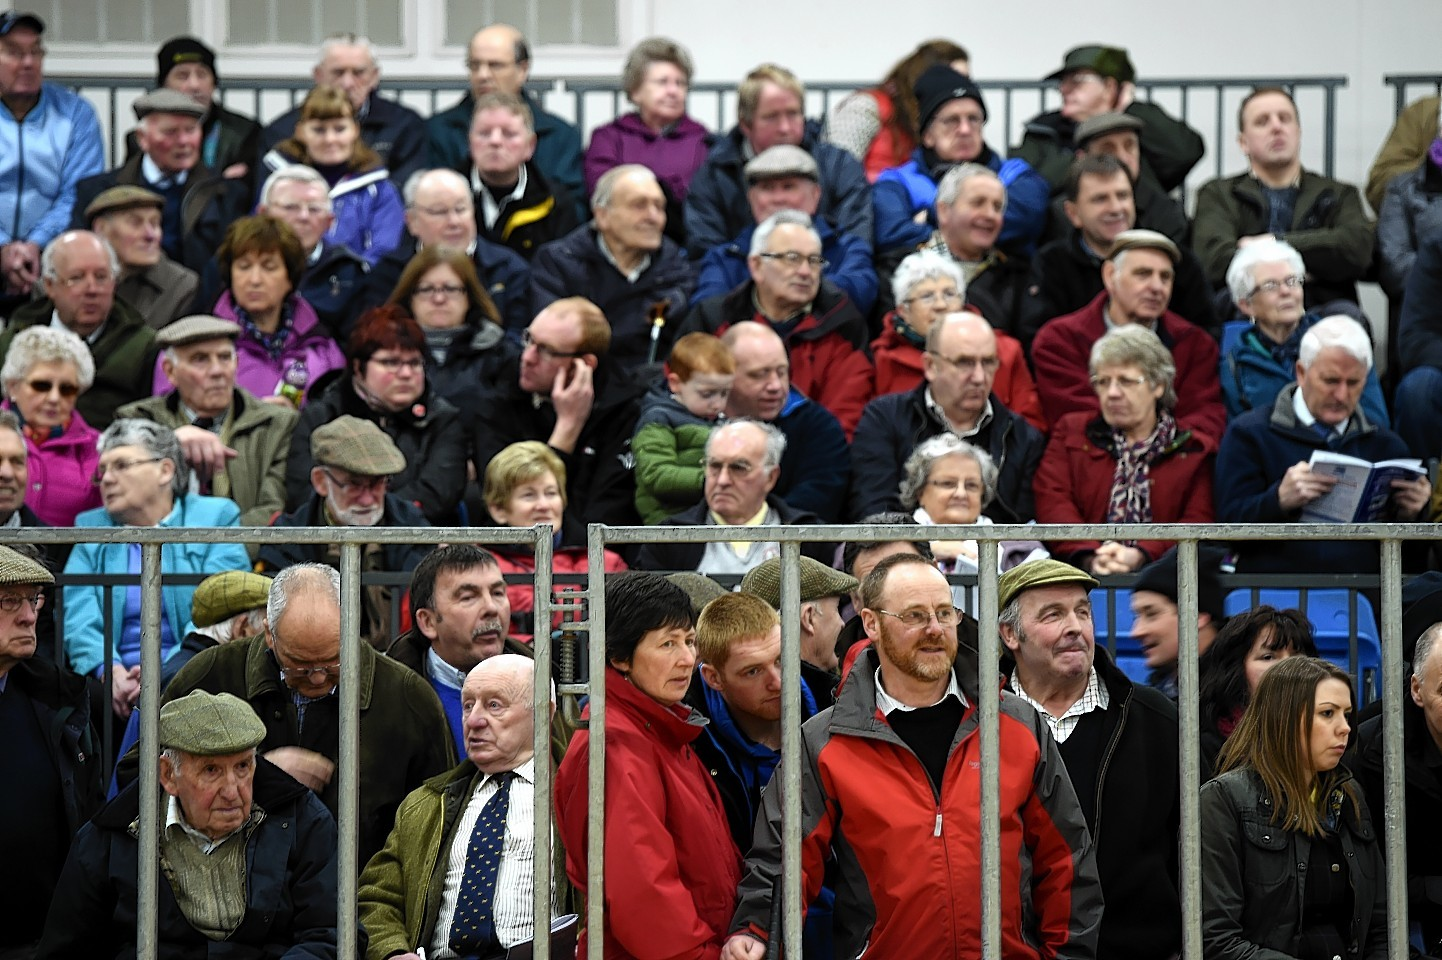 Hundreds of farmers gathered around the ring to watch the judging